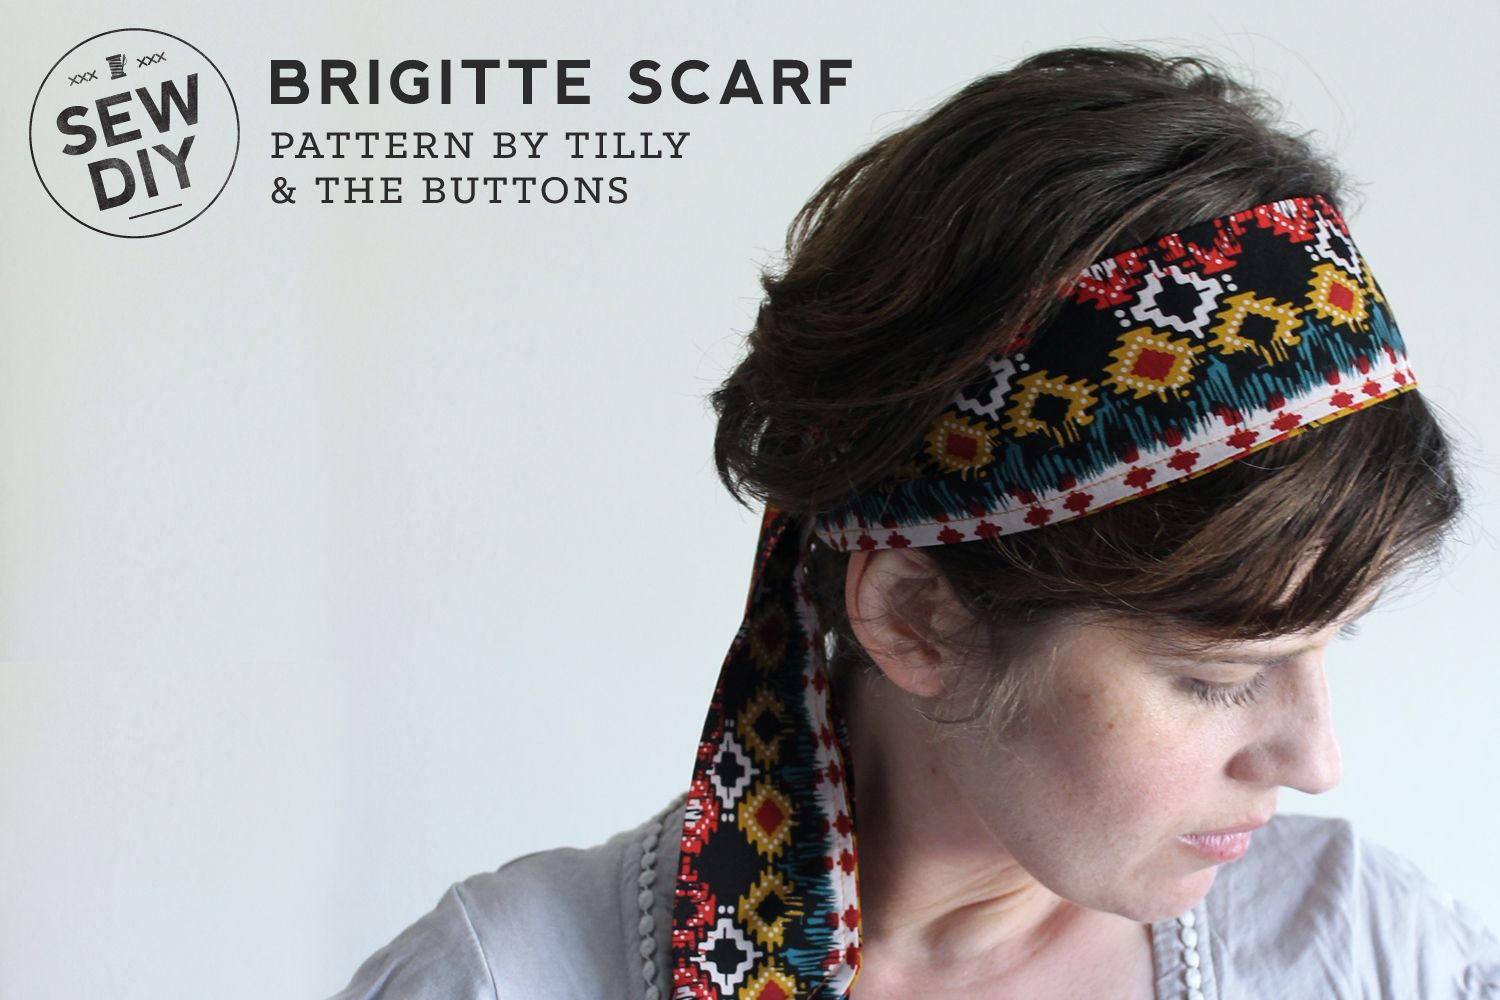 Today I'm really excited to share a DIY designed by Tilly from Tilly and  the Buttons –the Brigitte Scarf. This is a very easy DIY, the perfect  project for a beginning sewist. Tilly's instructions are detailed and very  easy to follow.For my scarf I used a tribal print fabric leftover from a  skirt that I helped my niece make. I love this scarf and haven't taken it  off since I first put it on! This basic shape that can be worn around the  neck, as a belt or tied onto a bag.